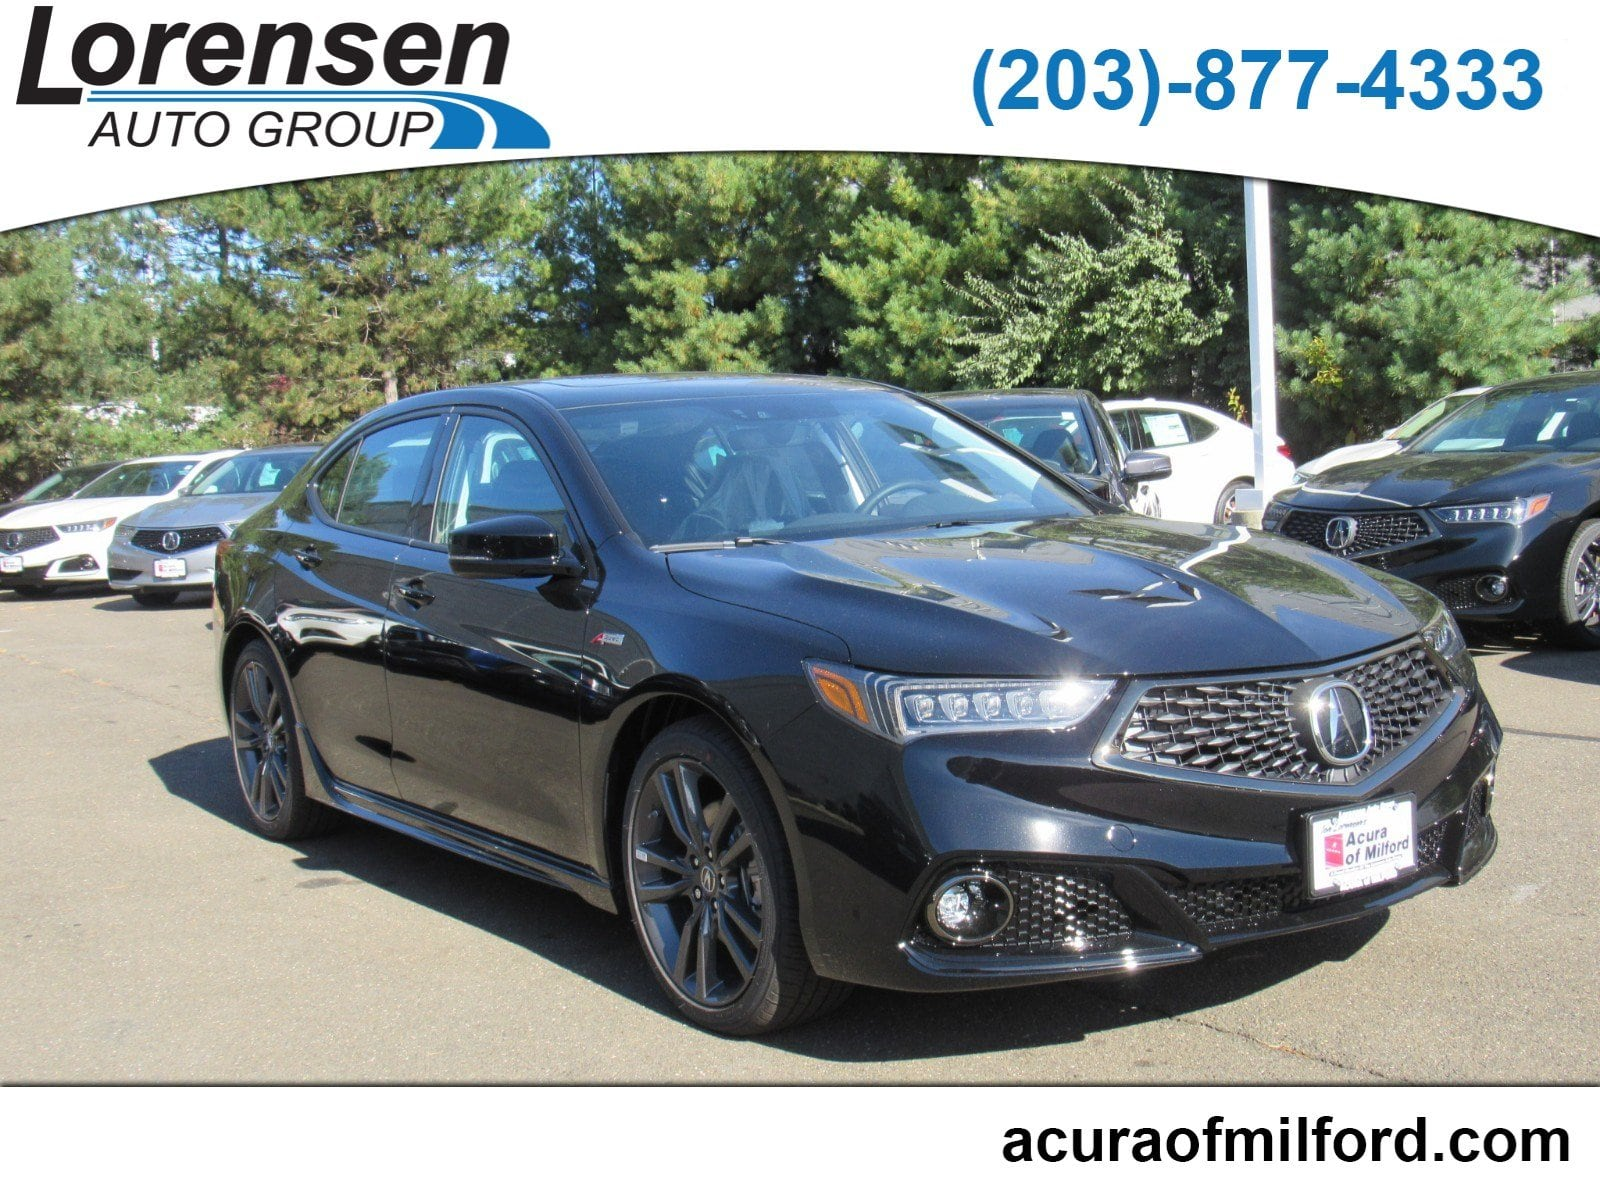 New 2019 Acura TLX 3 5 V 6 9 AT P AWS with A SPEC Sedan in Milford